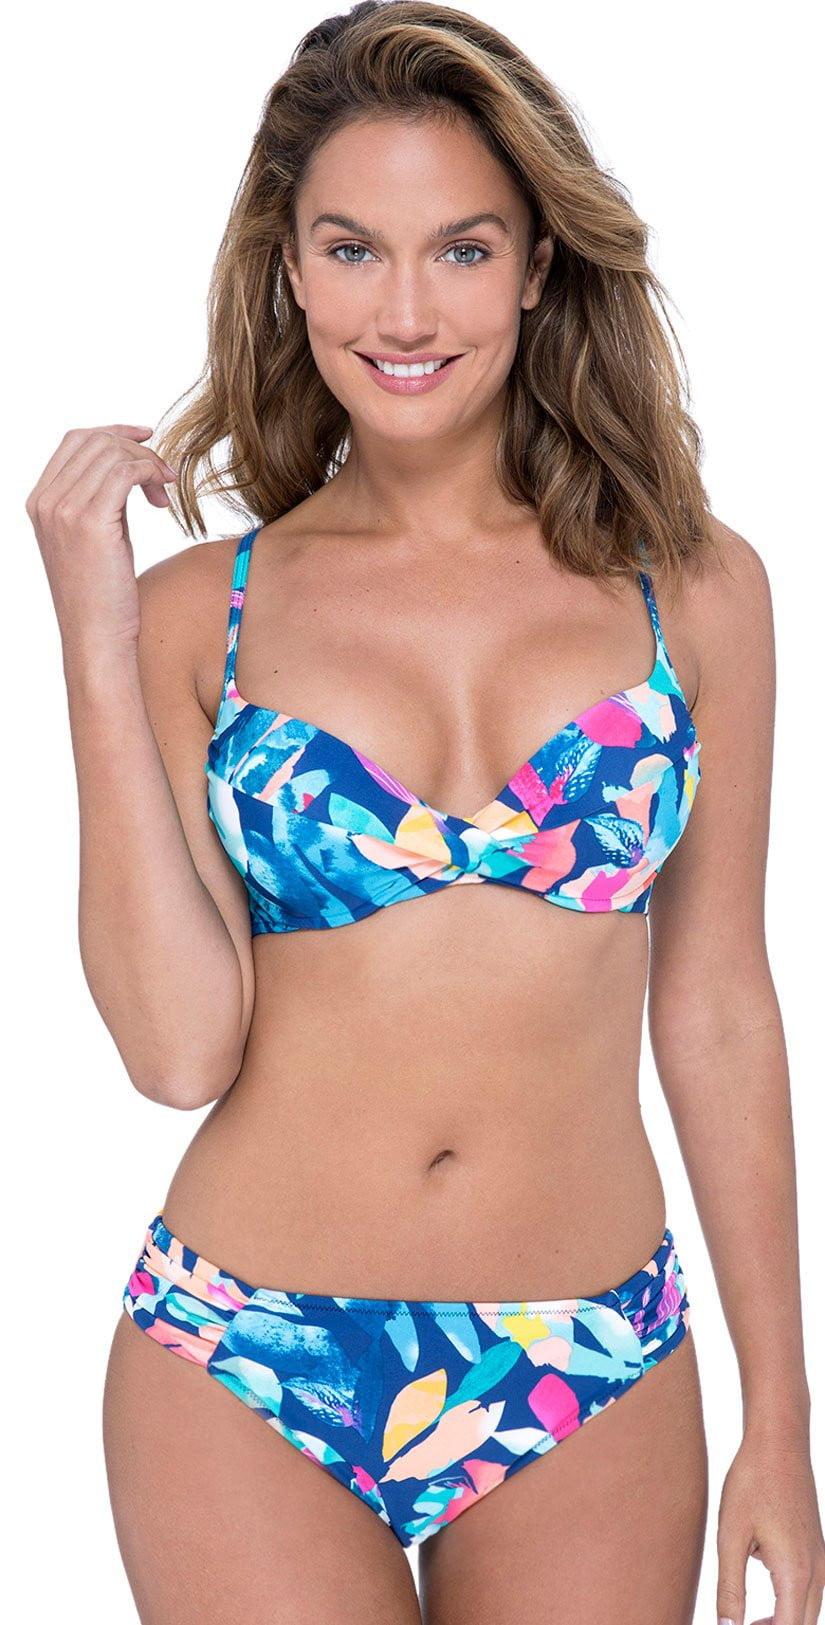 Profile By Gottex Bermuda Breeze Bikini Bottom E931 1P57 080: